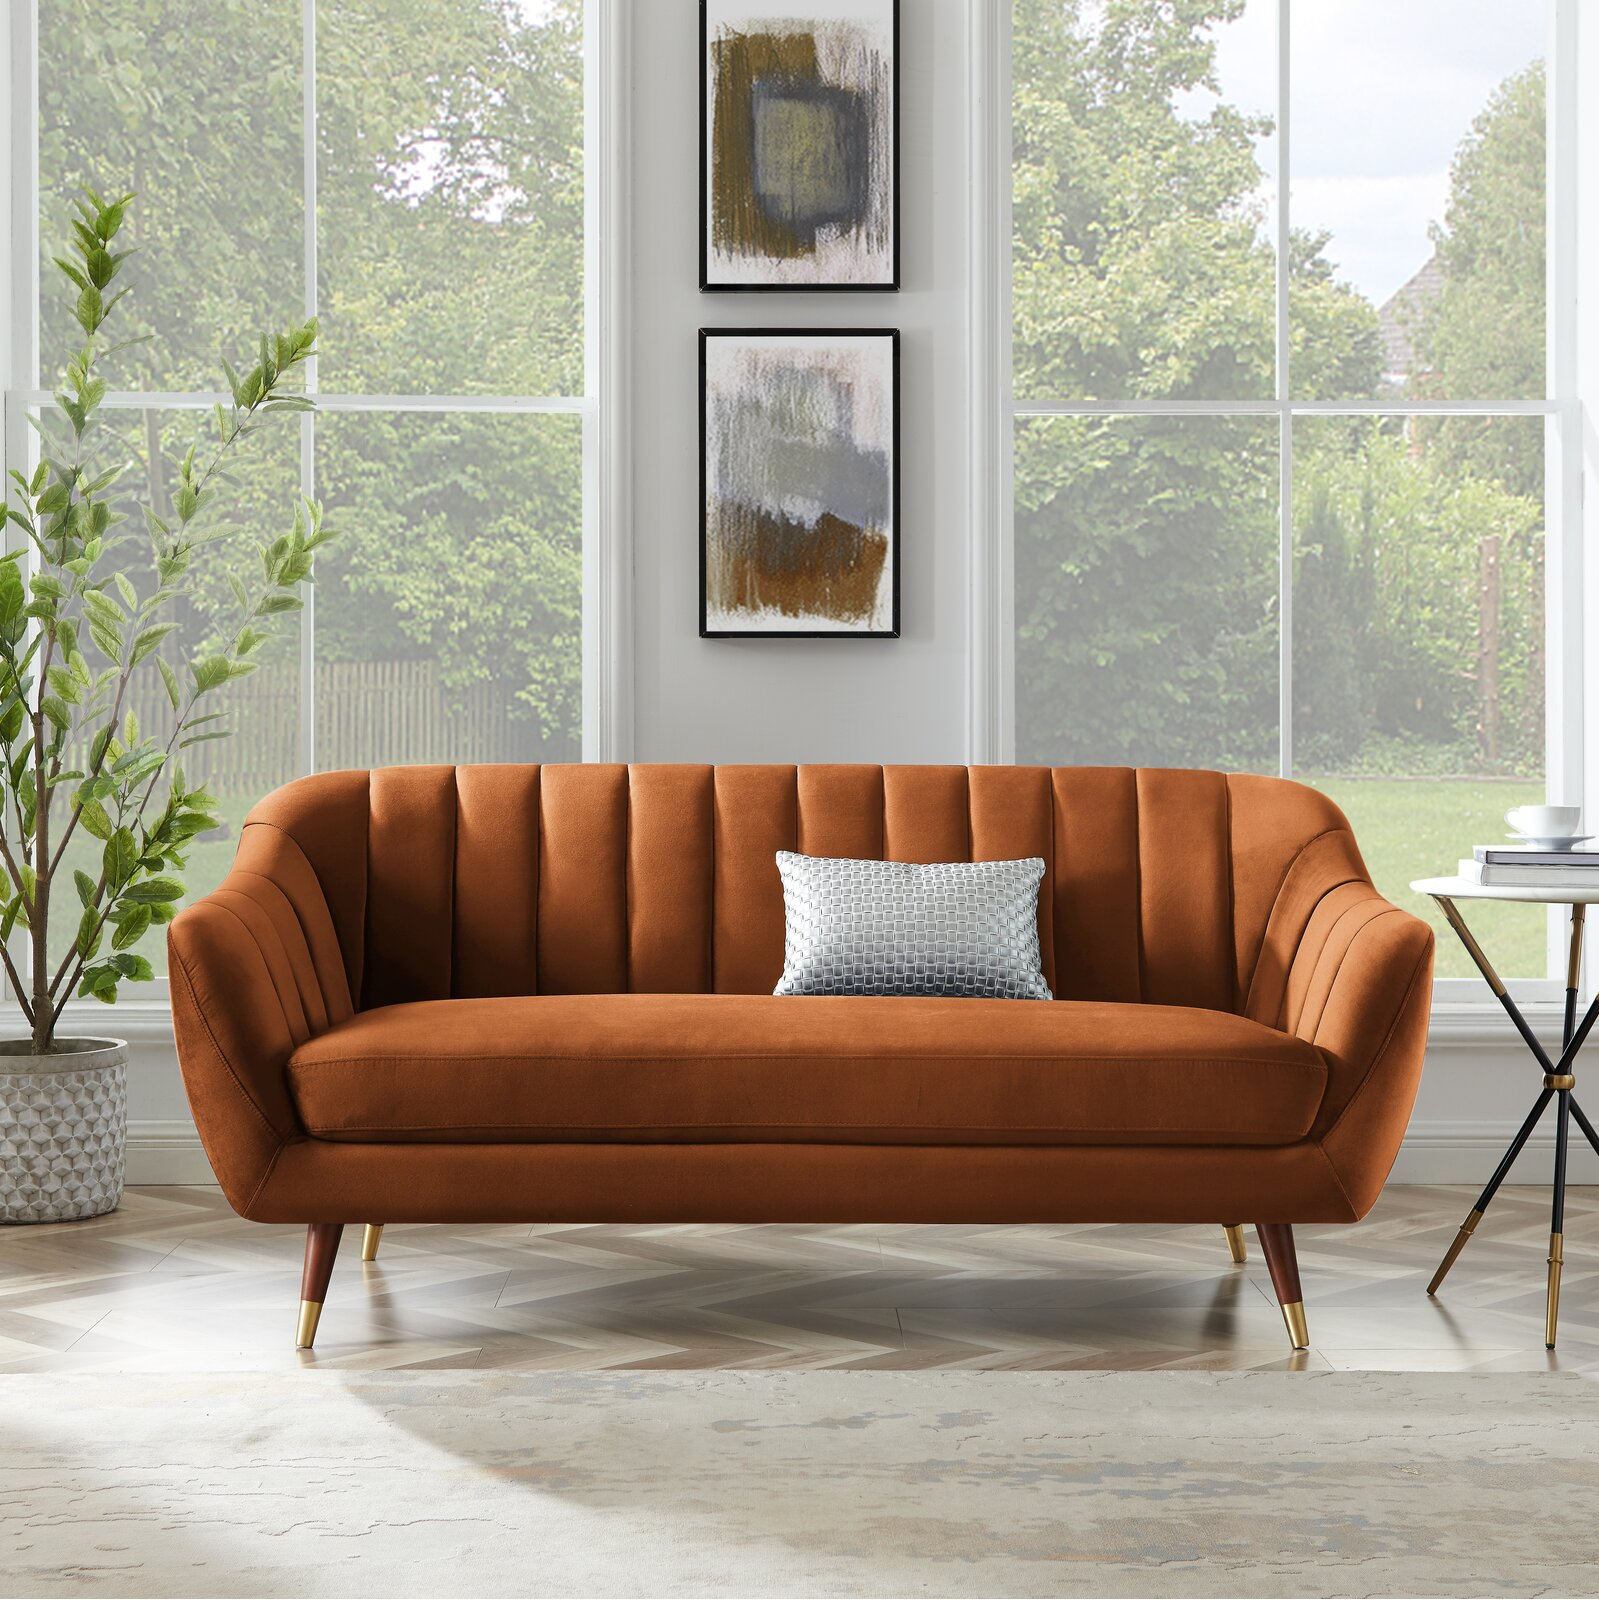 luxurious-orange-sofa-for-small-spaces-channel-tufted-cabriole-back-bench-seat-72-inch-width-mid-century-modern-furniture-for-living-room-bedroom